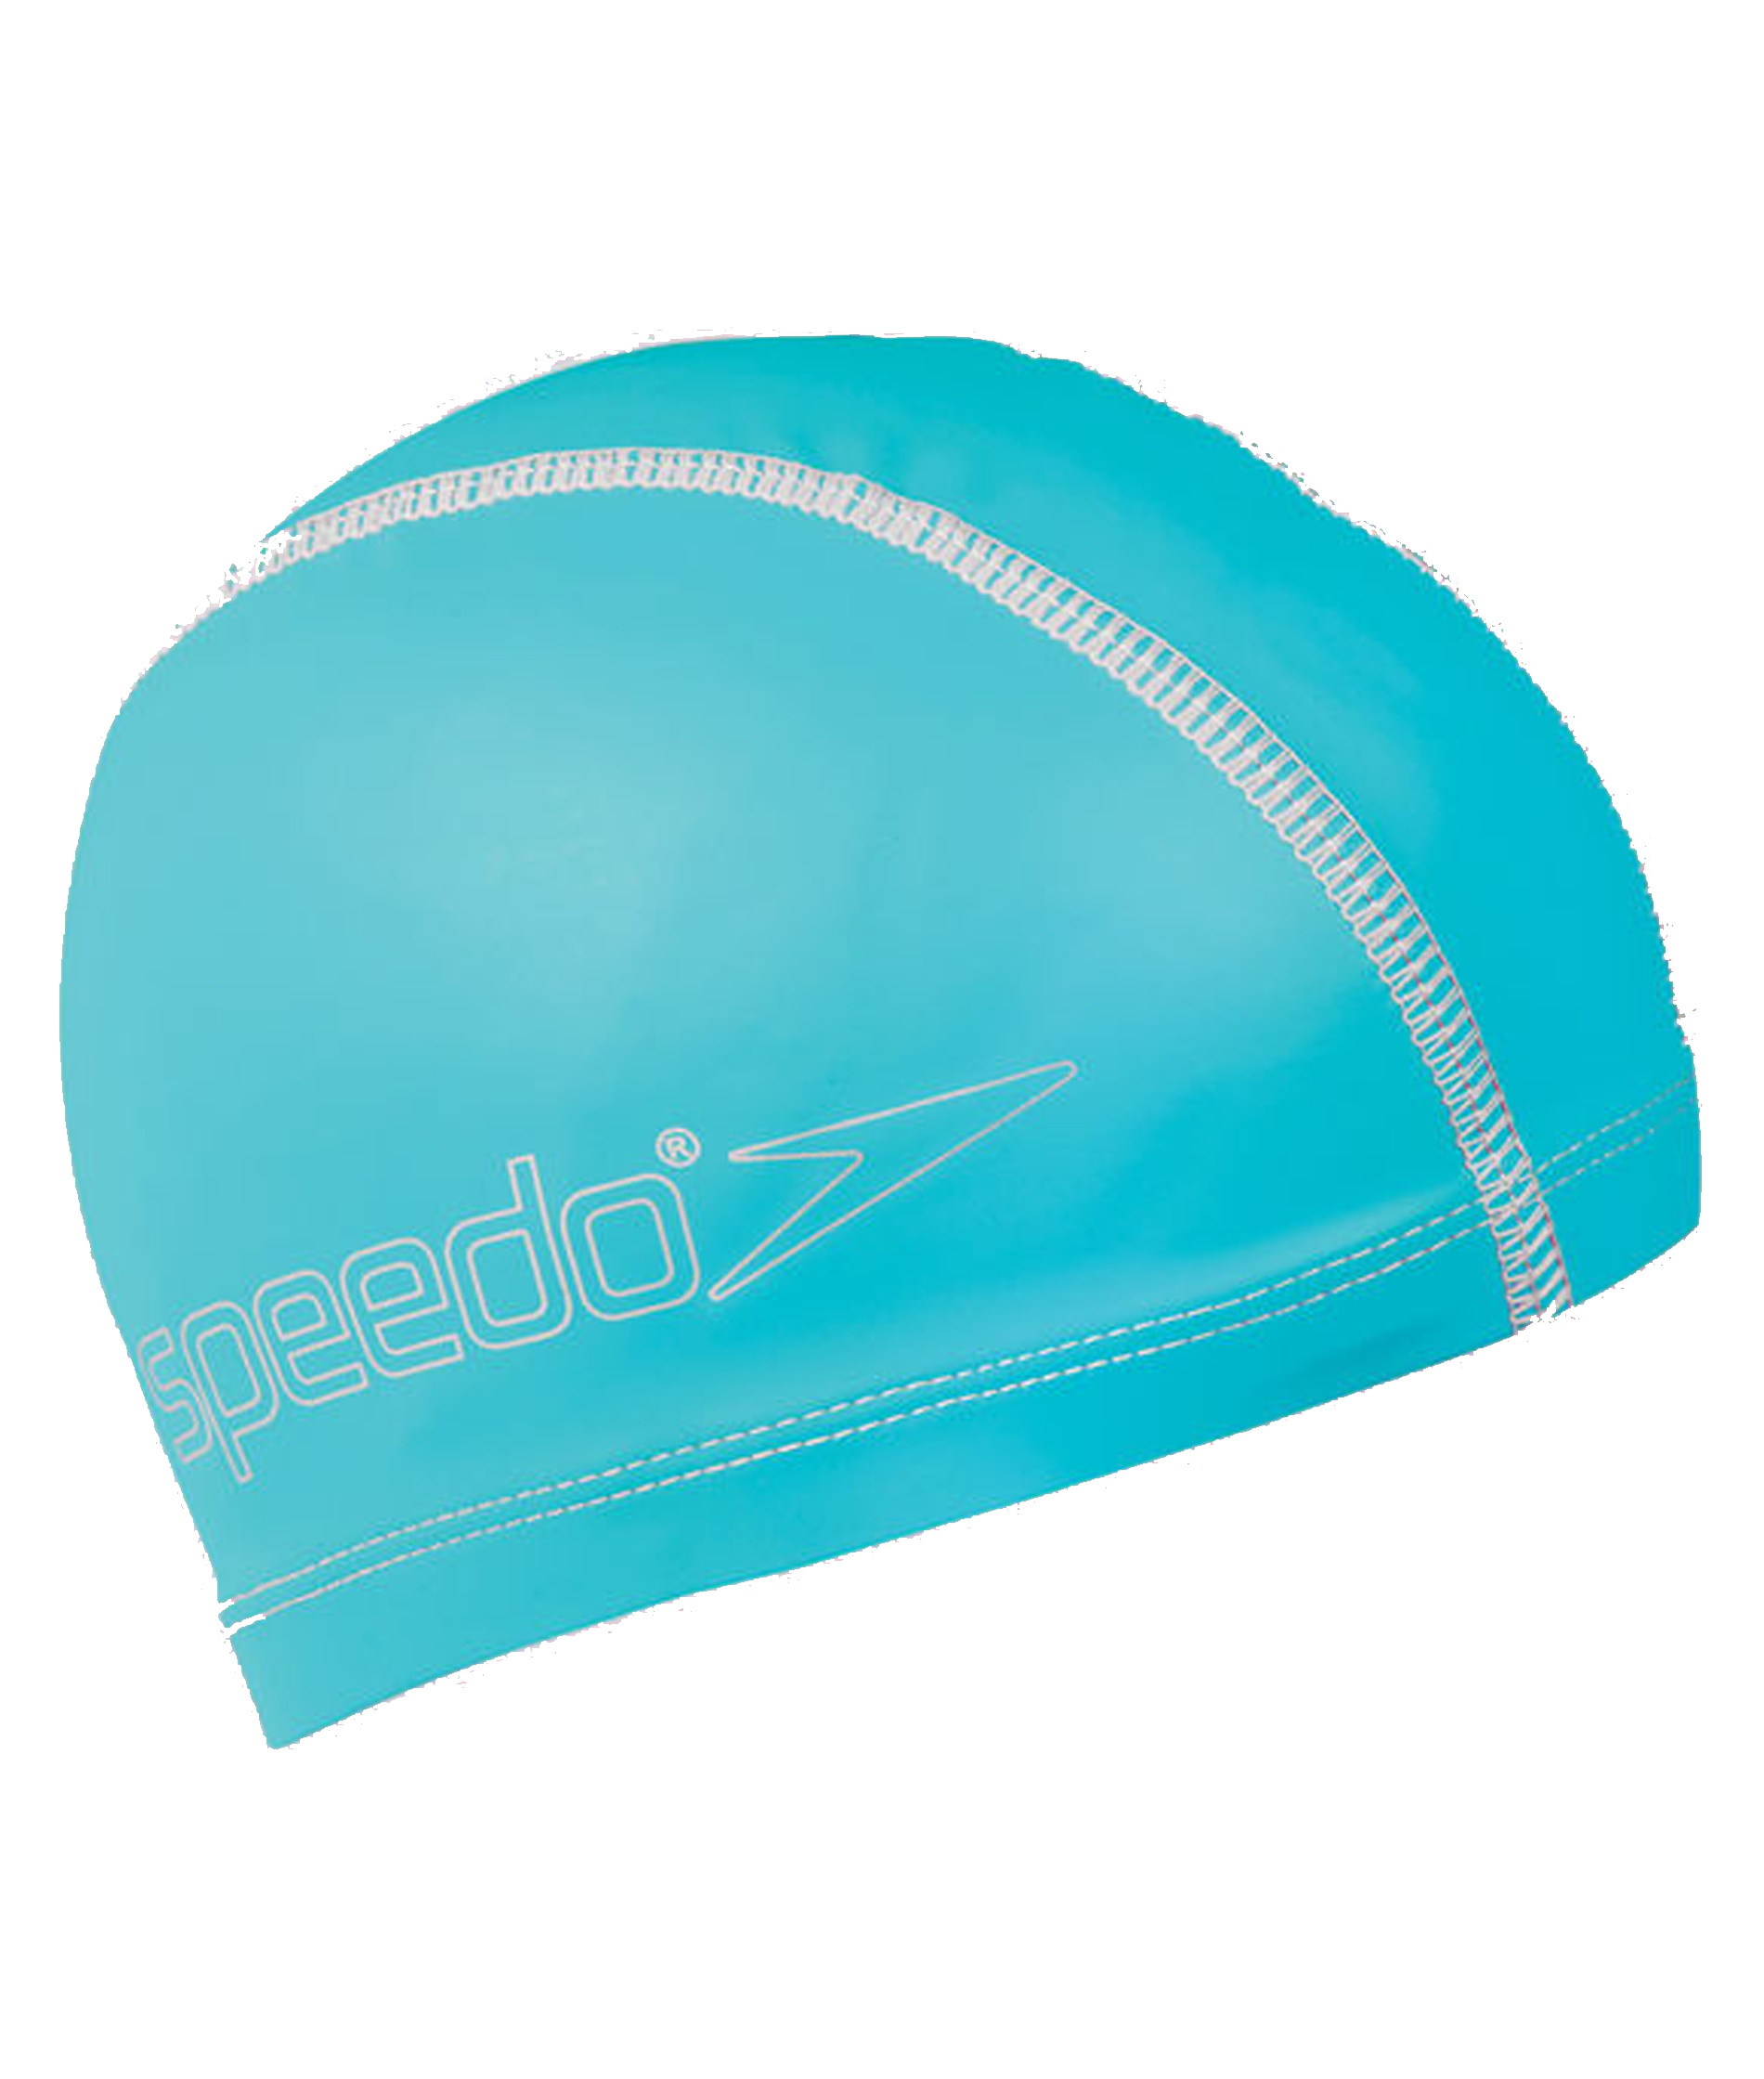 Speedo Junior Pace Cap - Blue